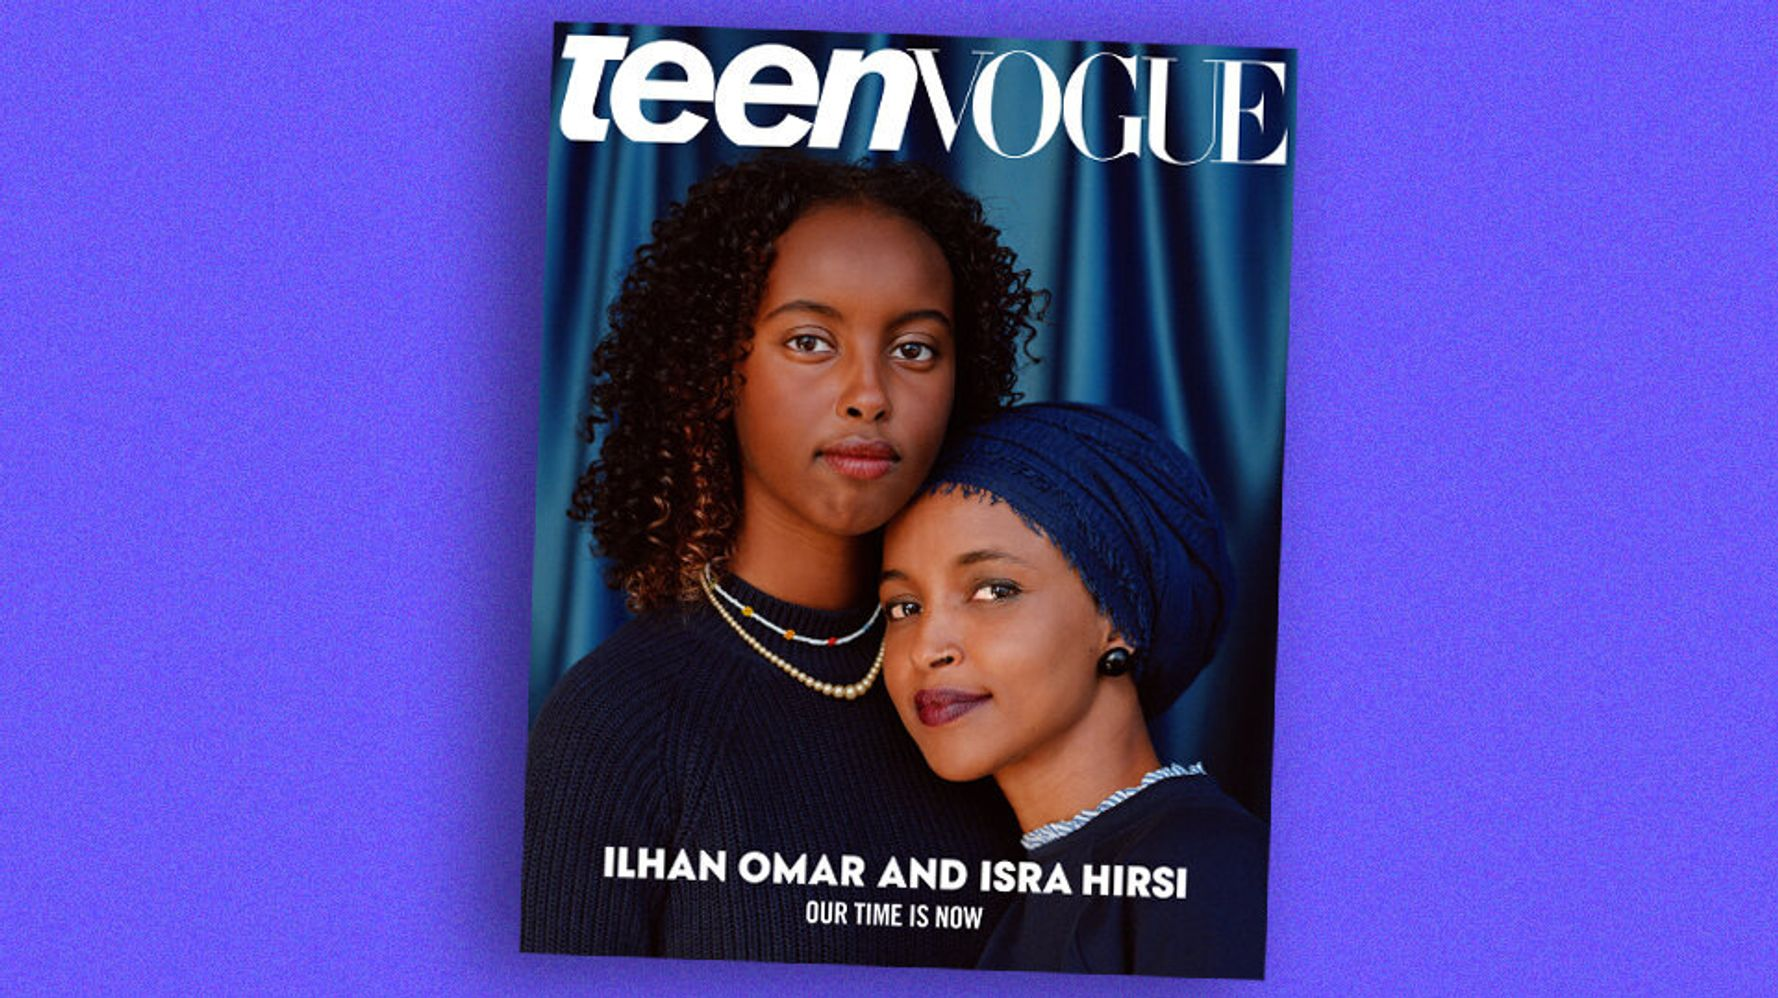 Ilhan Omar Graces Teen Vogue Cover With Her Teen Activist Daughter Isra Hirsi